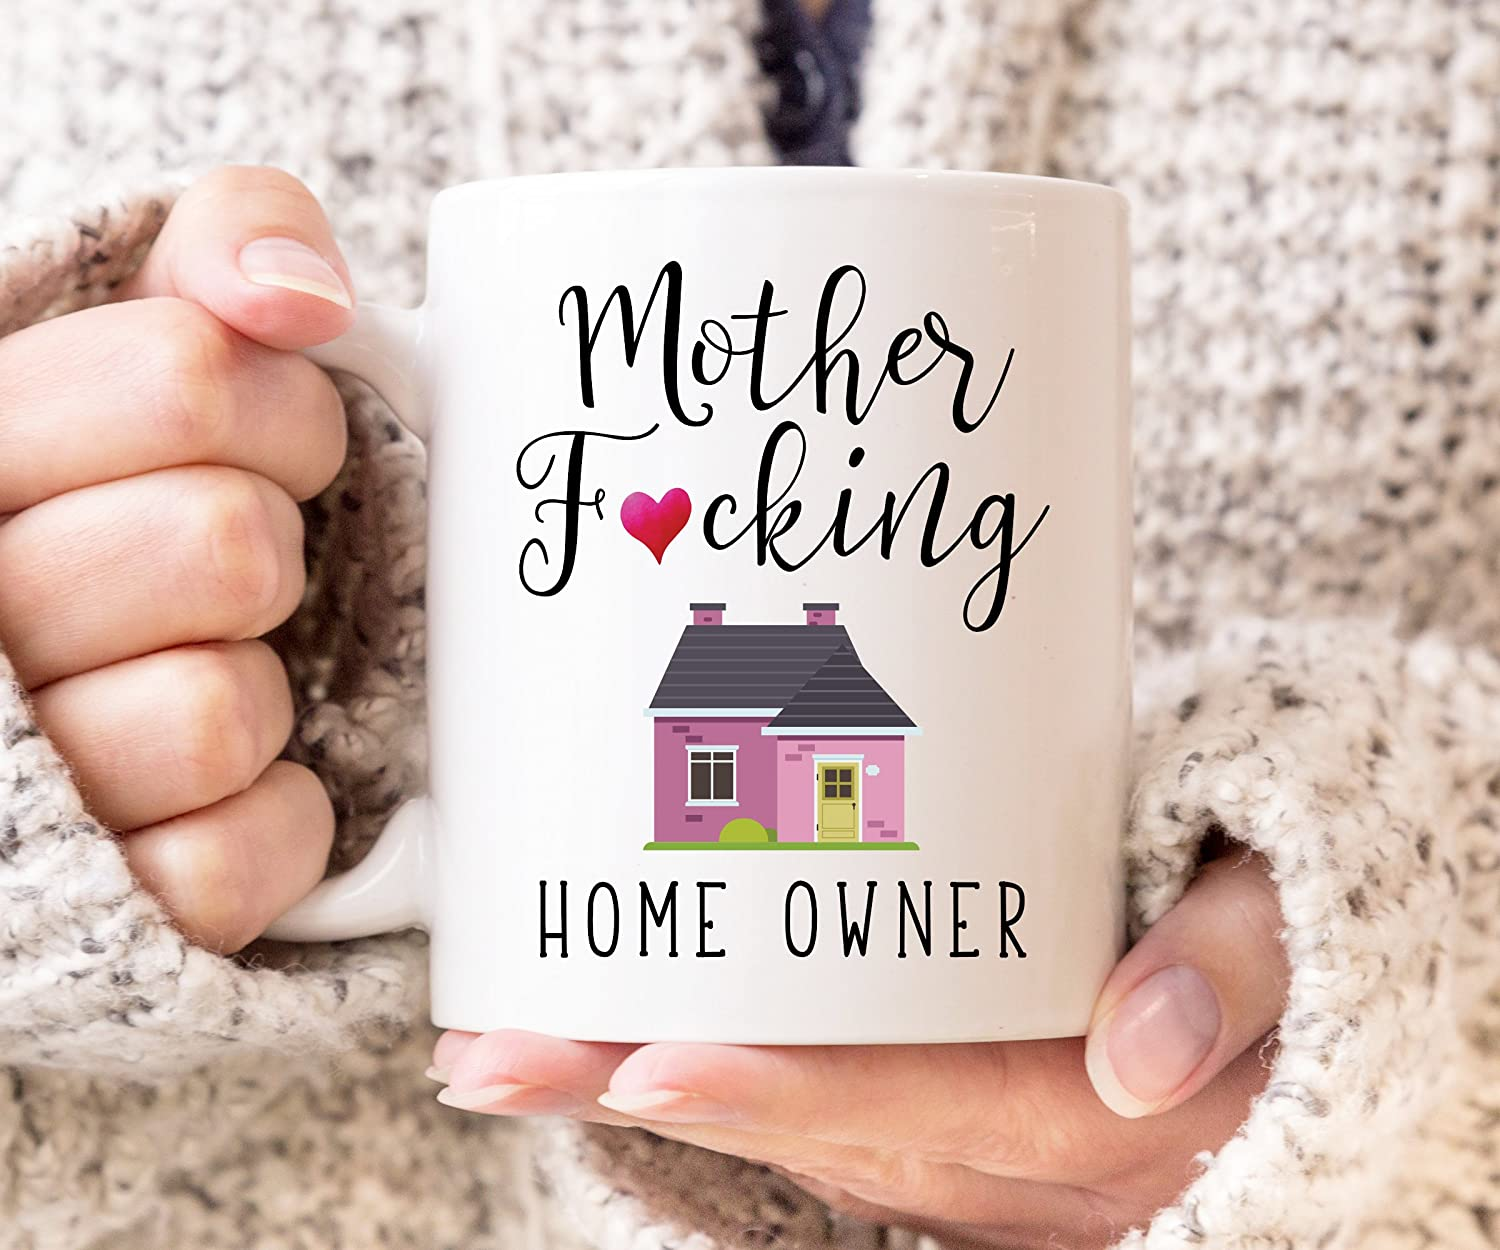 Mother Fcking Home Owner - Coffee Mug, New Home Mug, 11 or 15 Ounce Coffee Cup, Housewarming Gift, Closing Gift, New Homeowner Gift